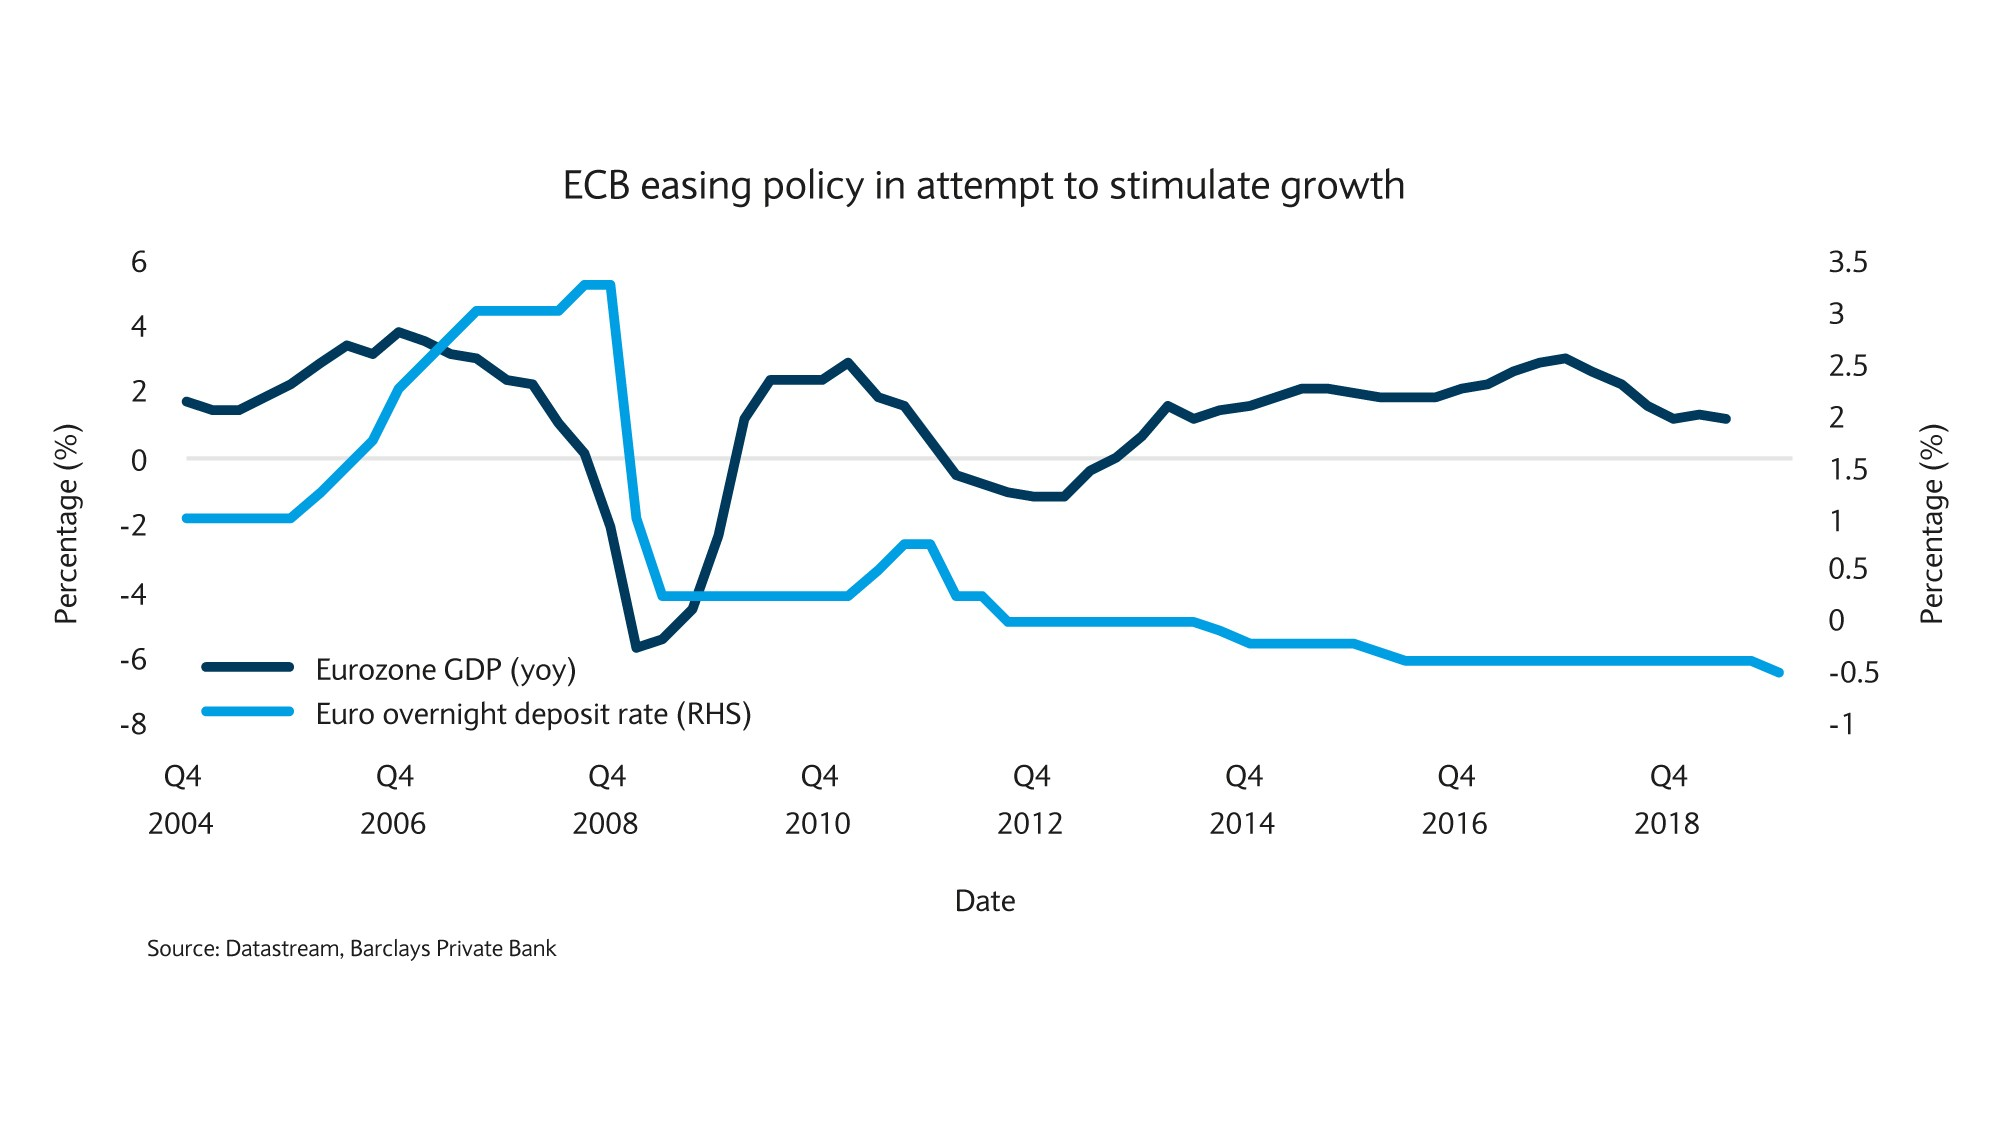 ECB easing policy in attempt to stimulate growth